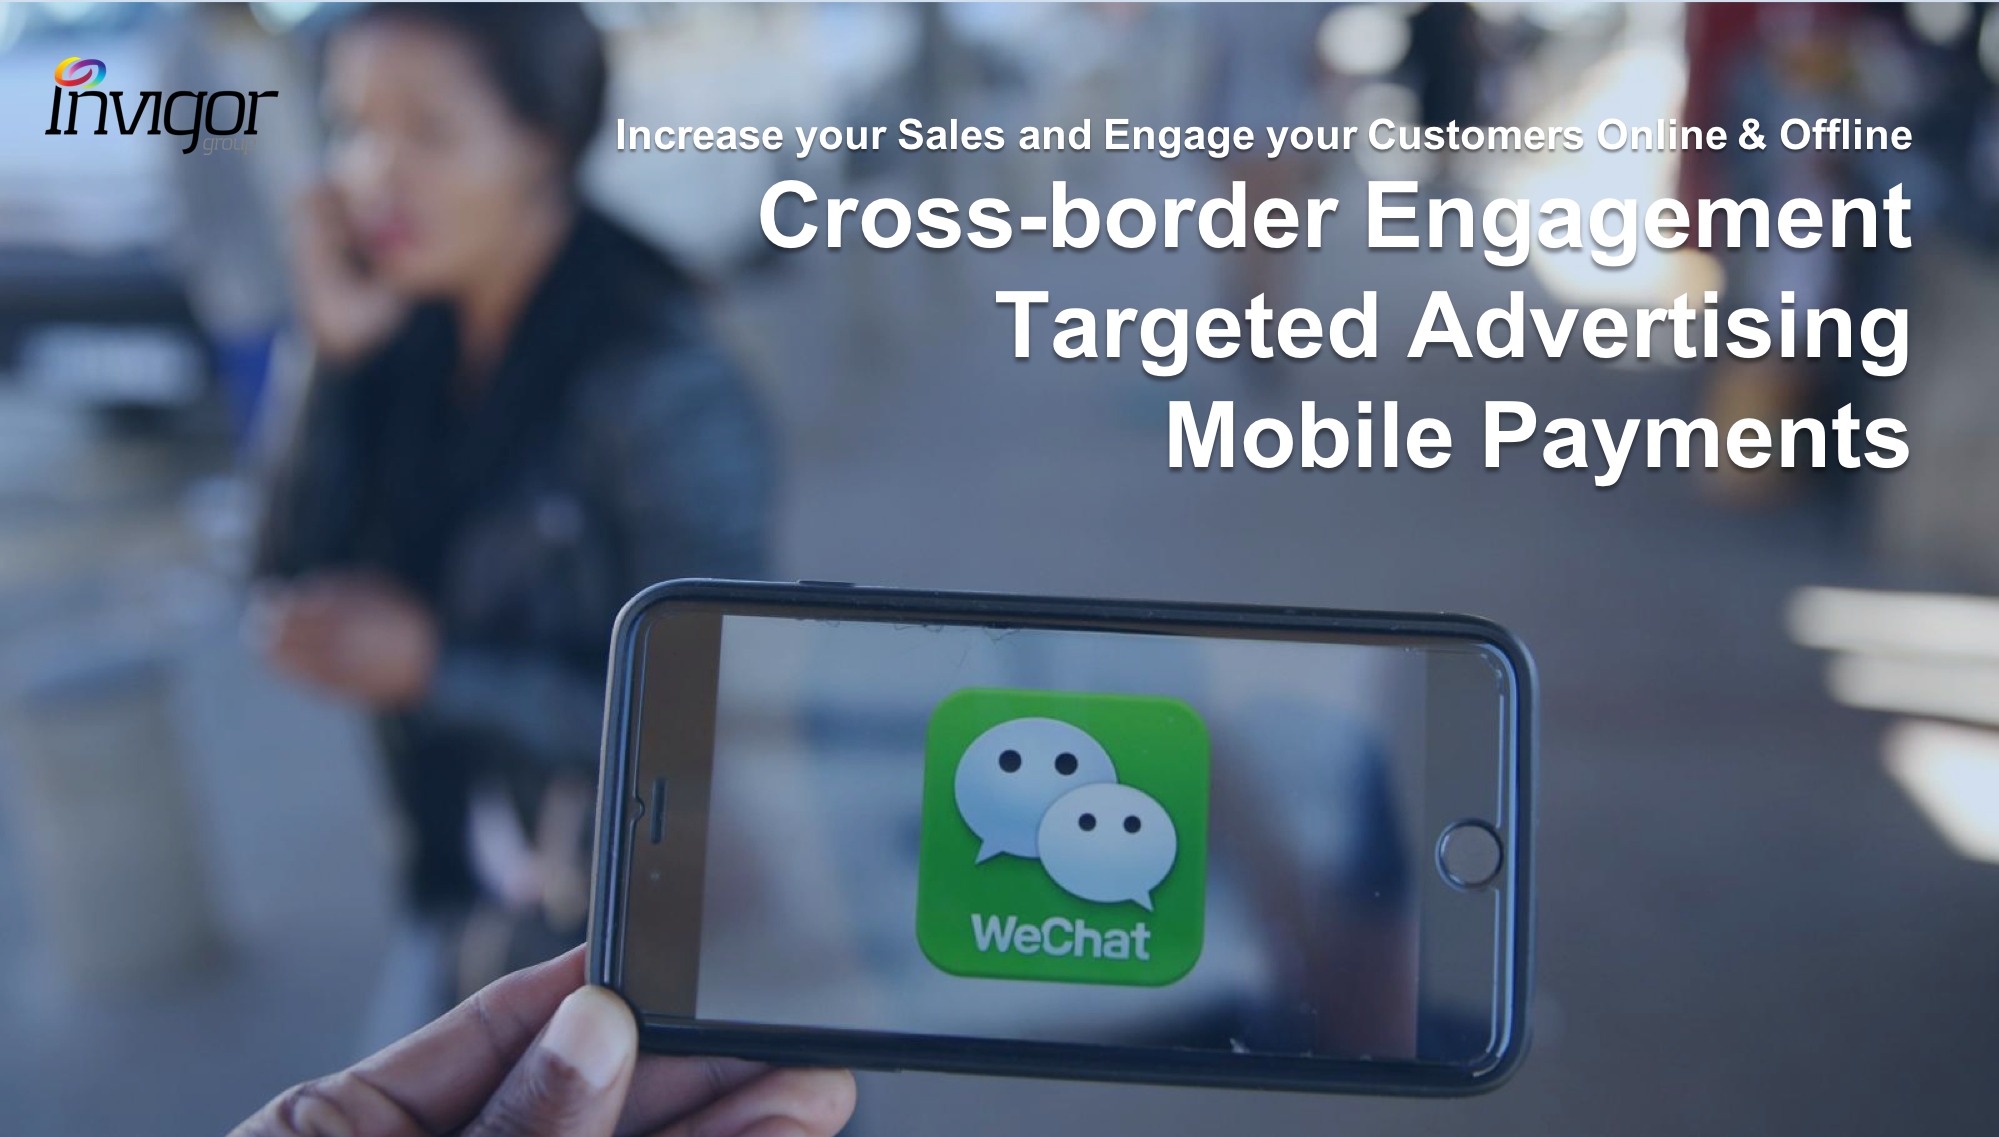 WeChat Pay & WeChat Advertising with Invigor Group